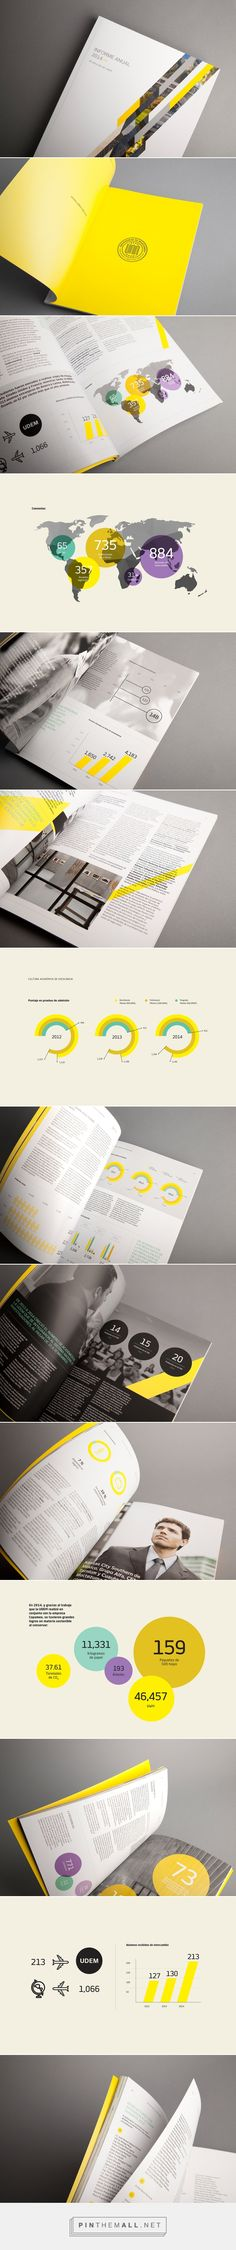 UDEM Anual Report on Behance - created via https://pinthemall.net